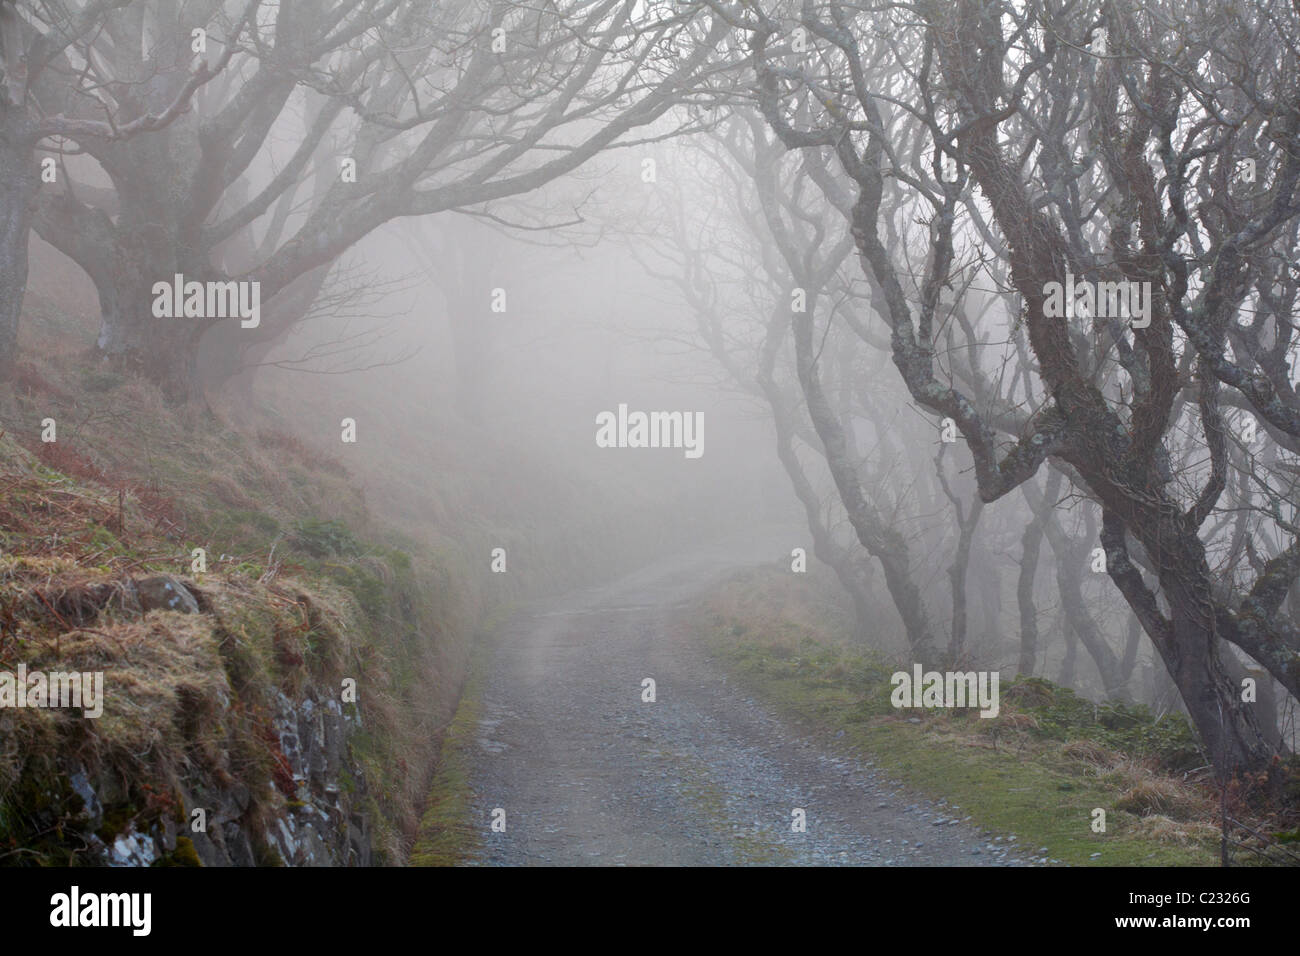 pathway and gnarled trees enveloped by thick fog on Lundy Island, Devon, England UK in March - Stock Image